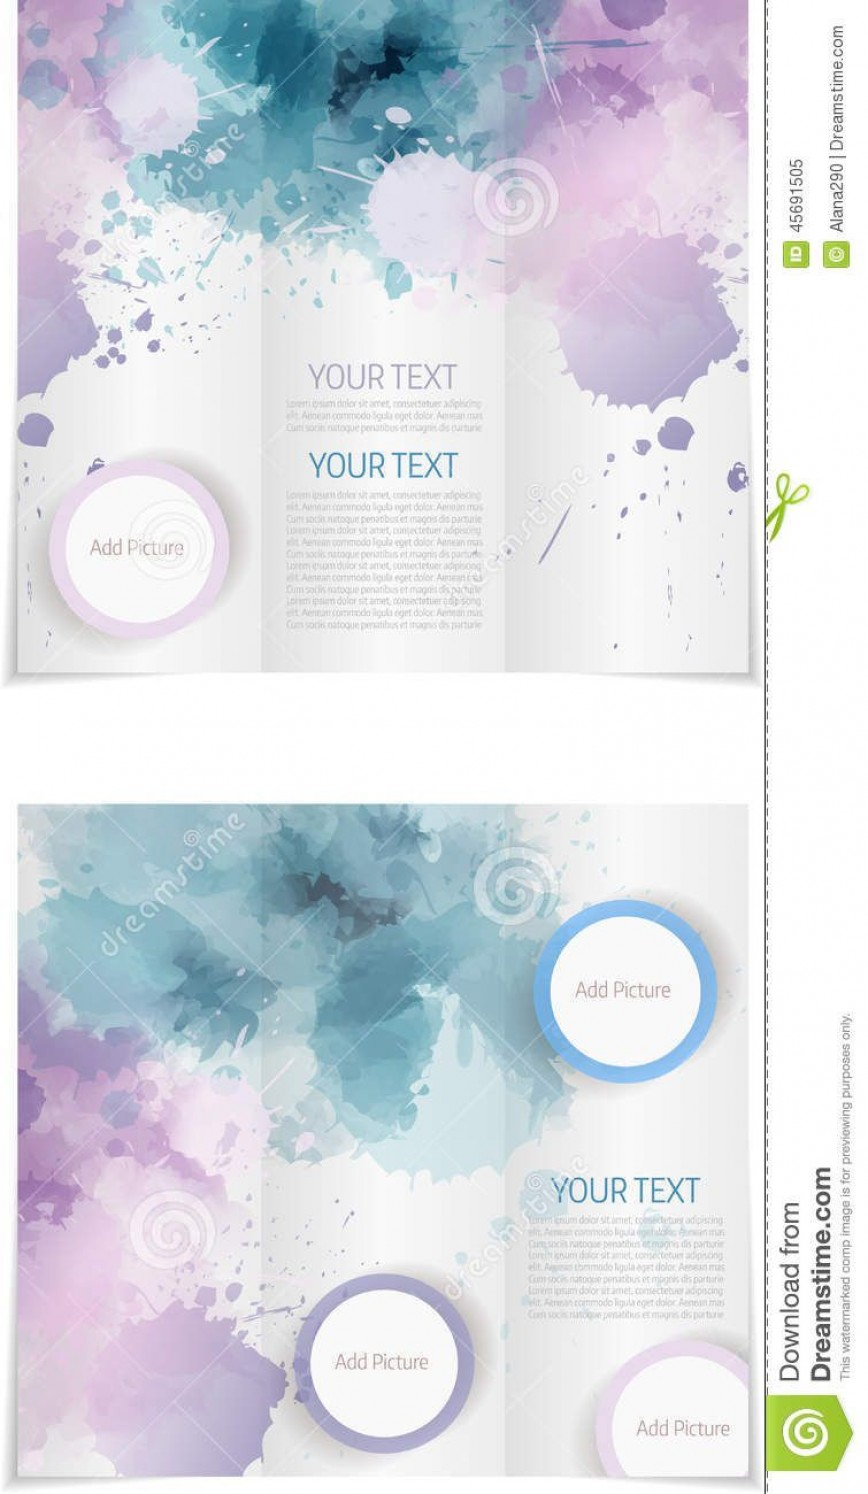 010 Unbelievable M Word Tri Fold Brochure Template Highest Clarity  Microsoft Free Download868